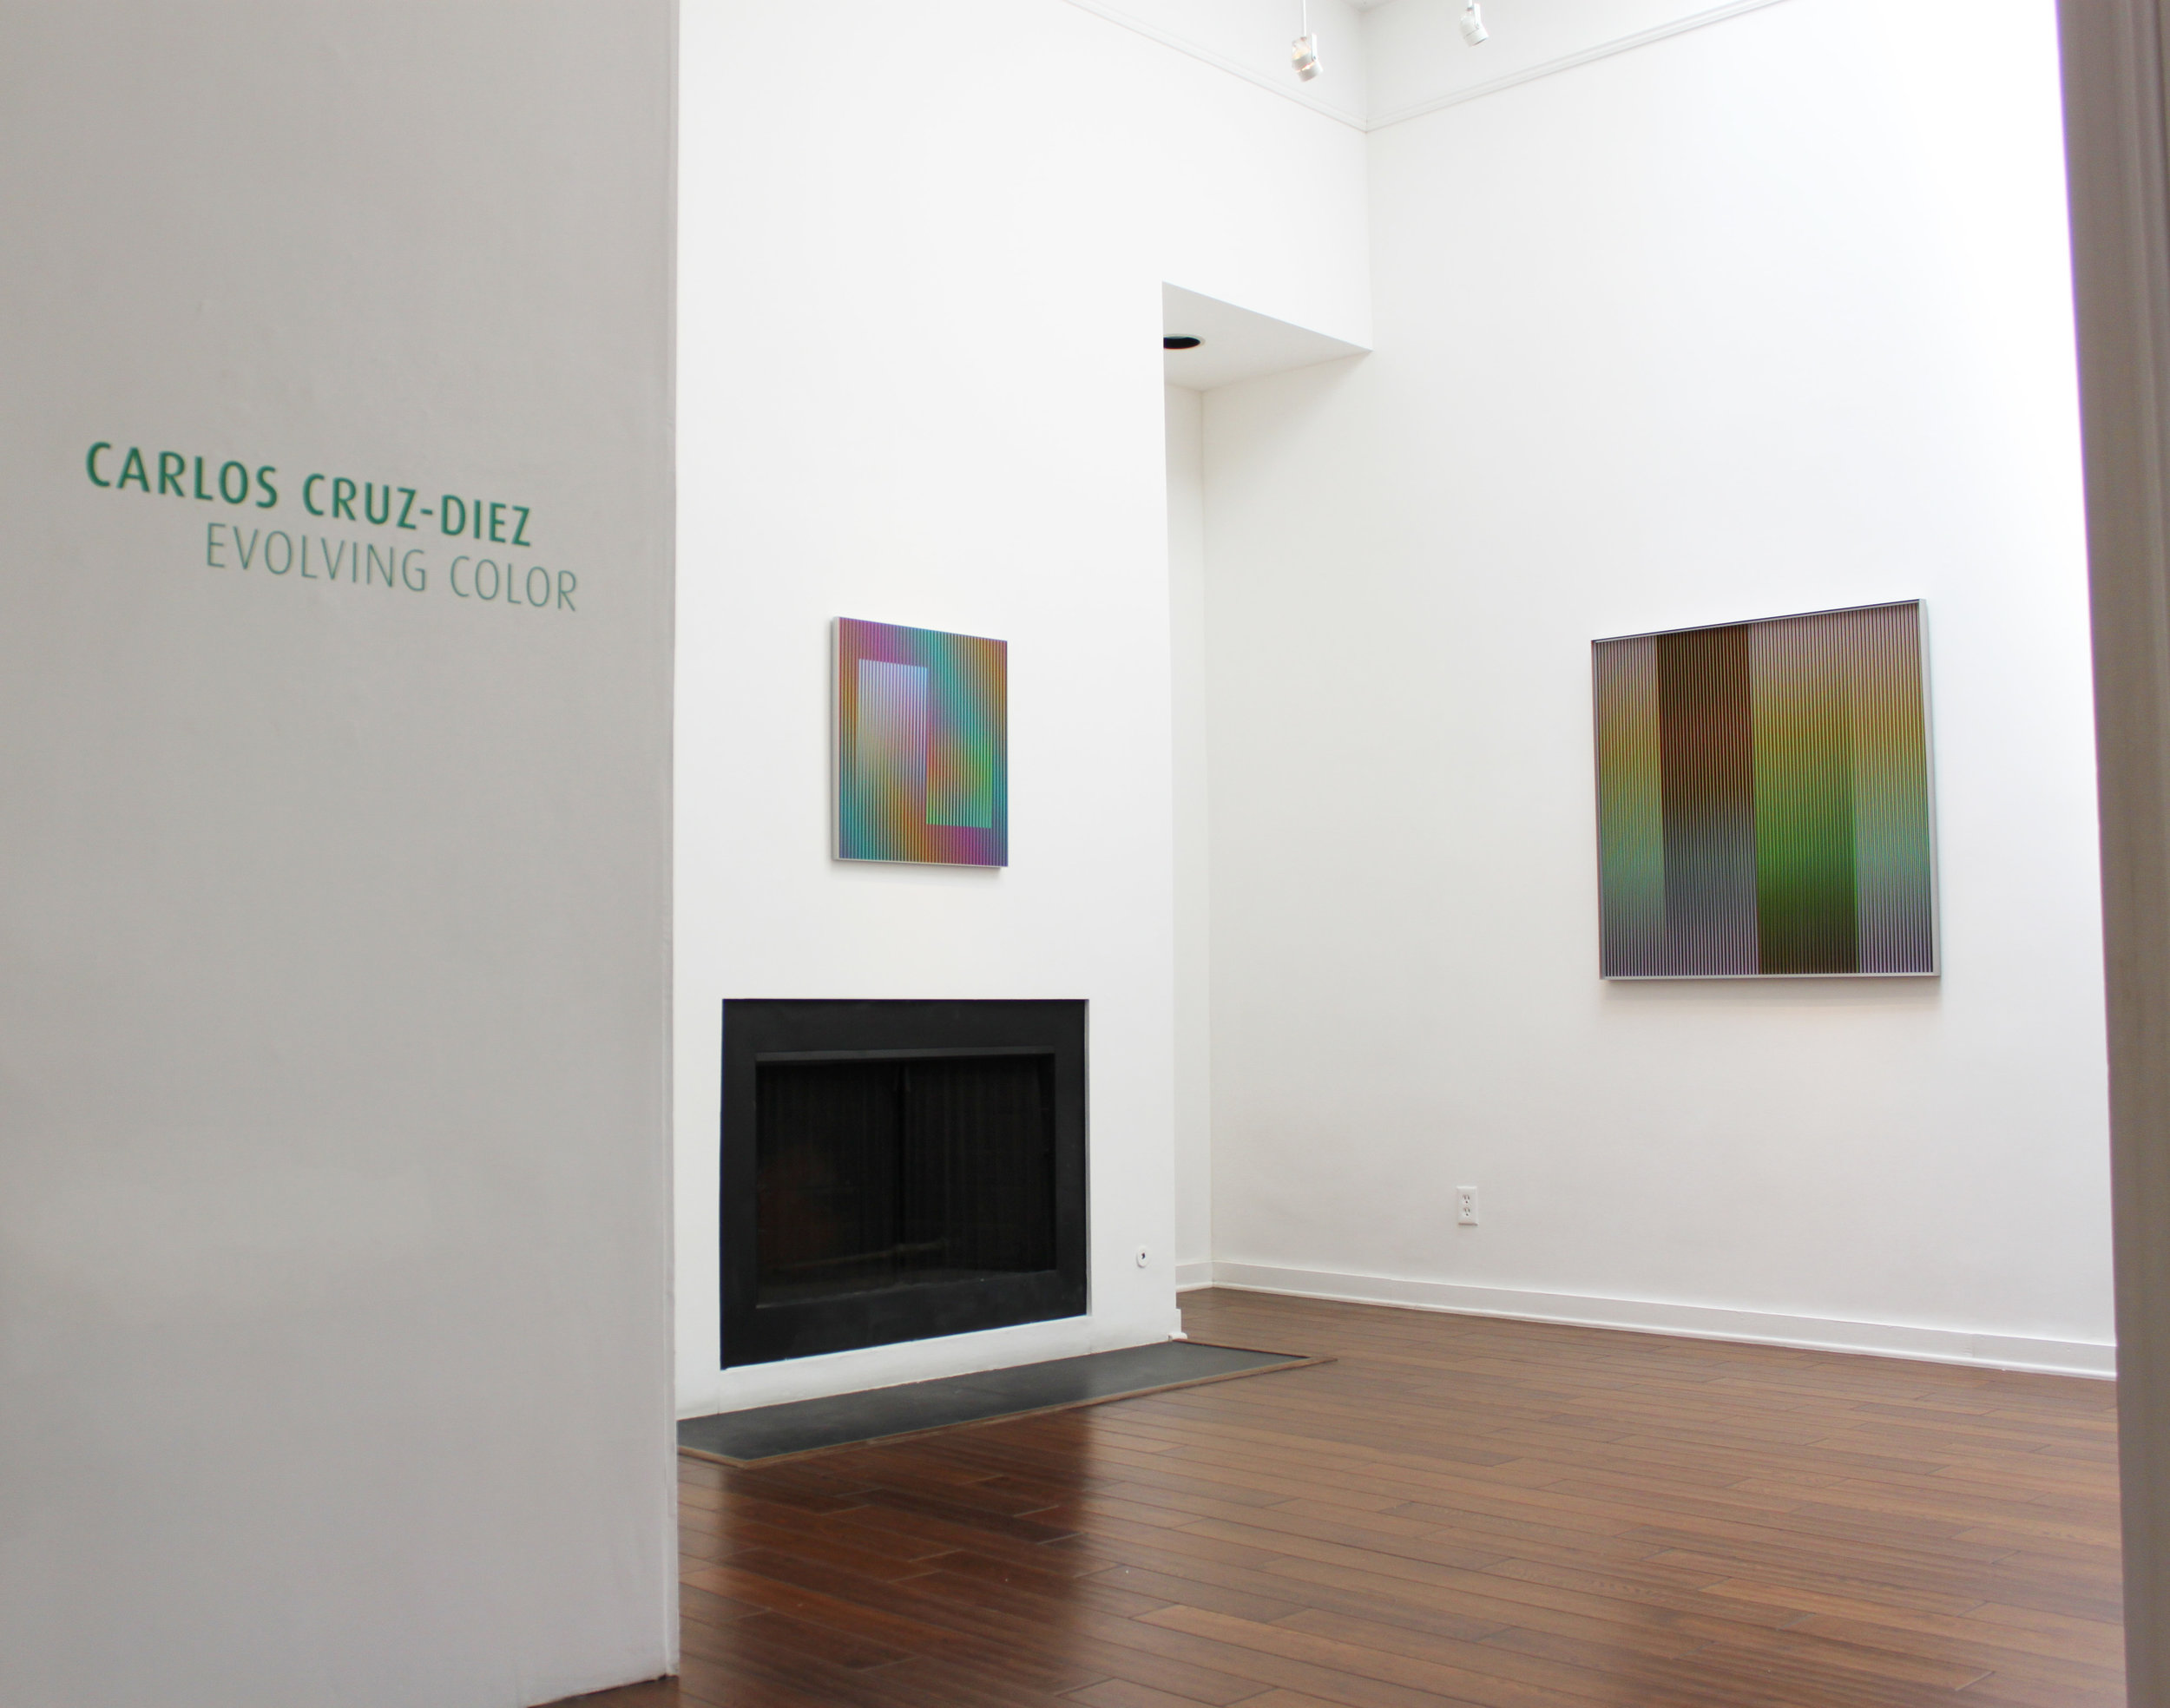 Carlos Cruz-Diez: Evolving Color